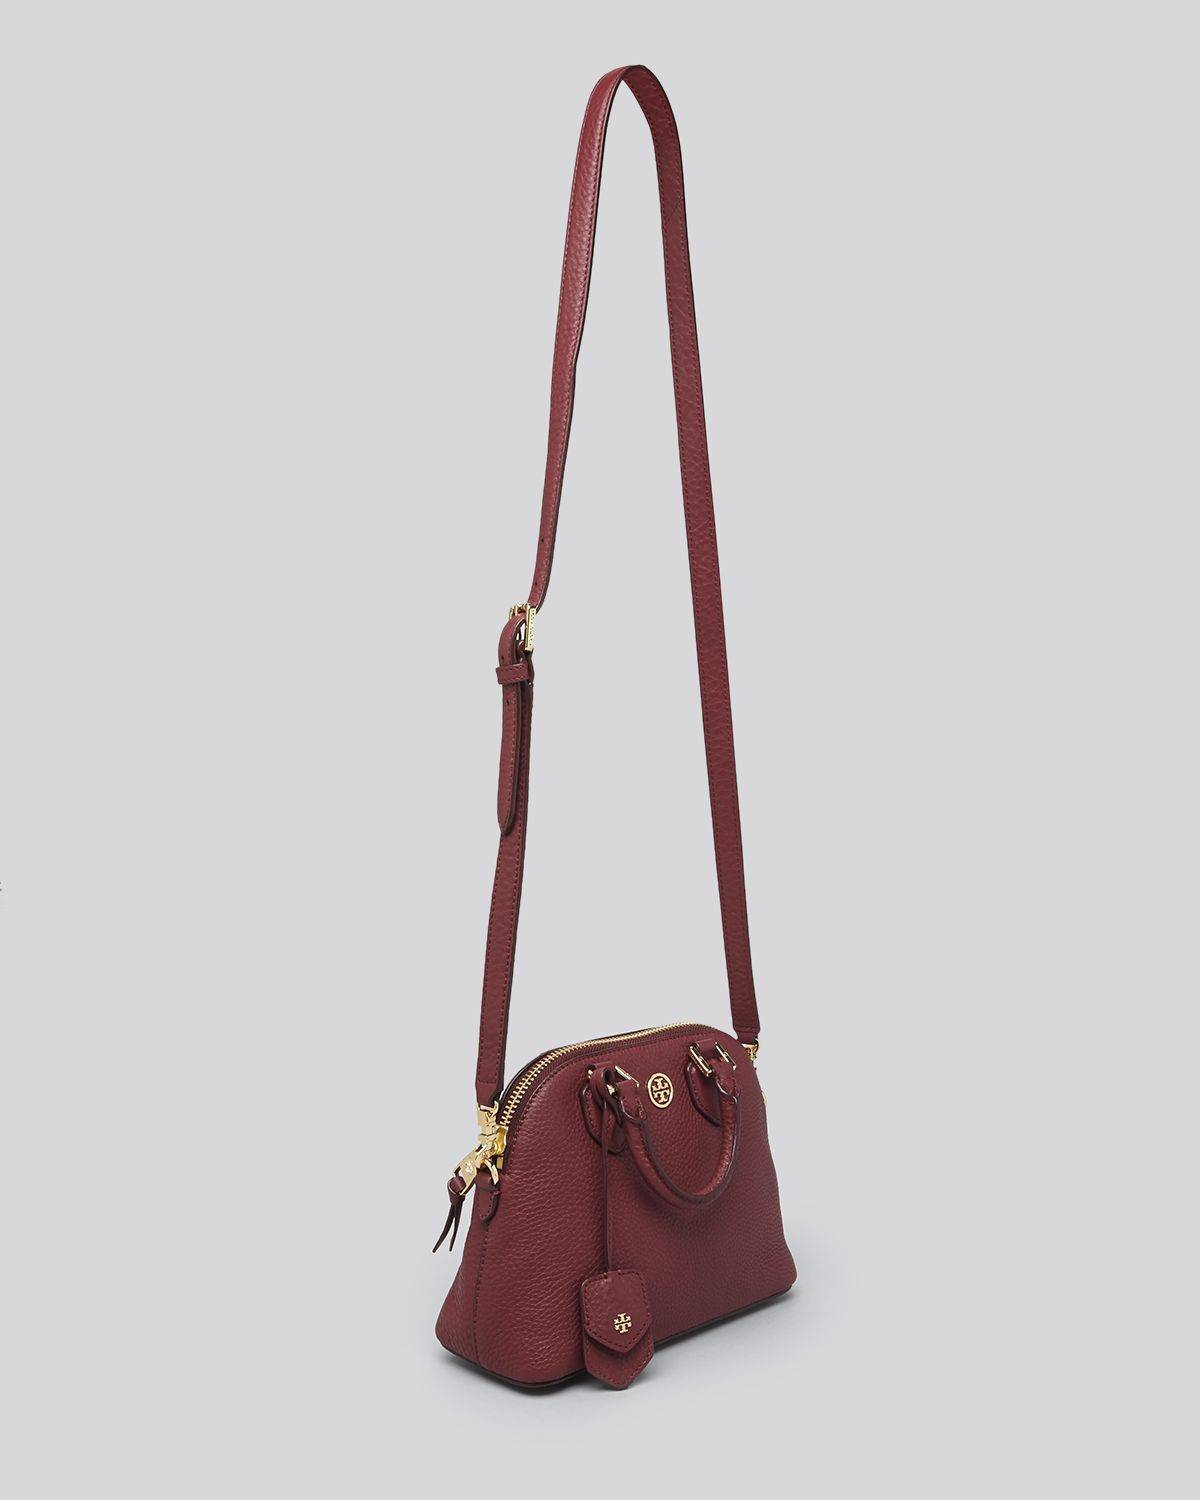 Lyst - Tory Burch Crossbody - Robinson Pebbled Mini Dome in Natural 3d75102789